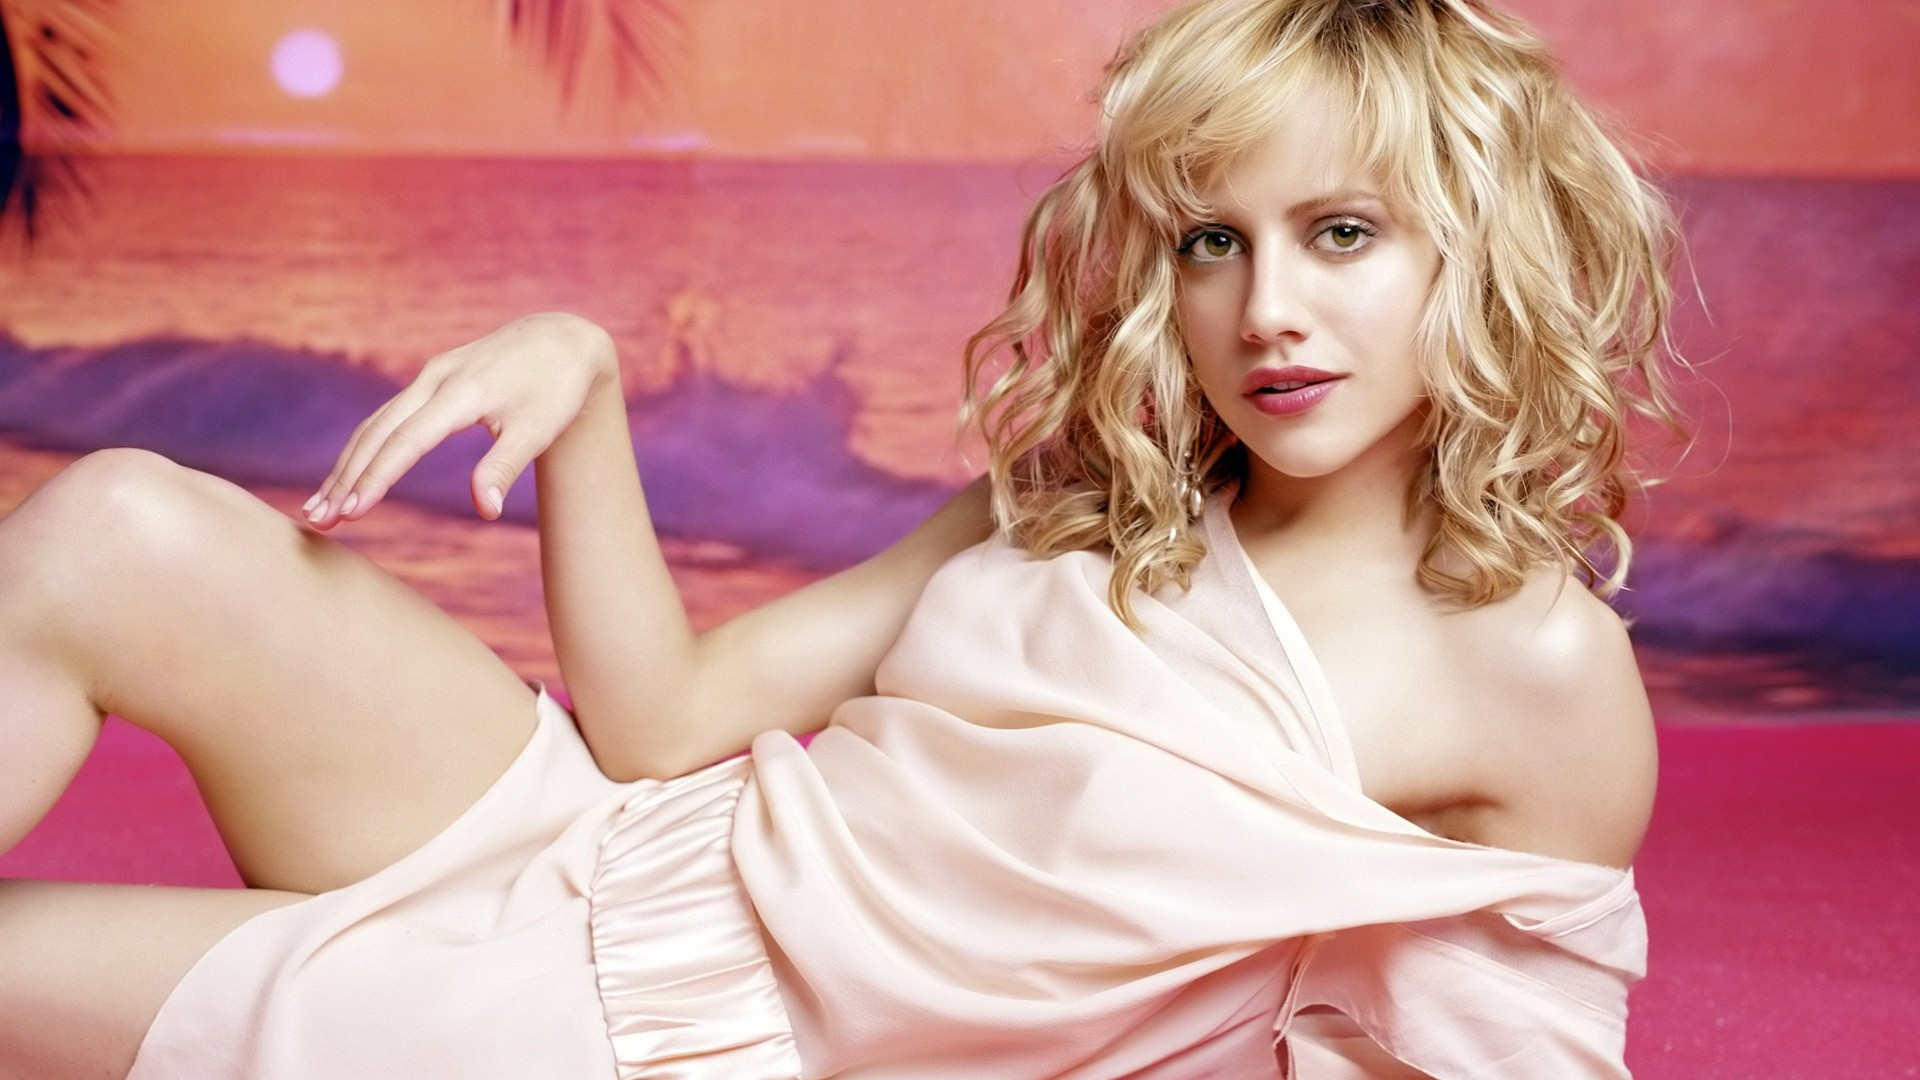 Rajput Girl Wallpaper Facebook Covers For Brittany Murphy Popopics Com